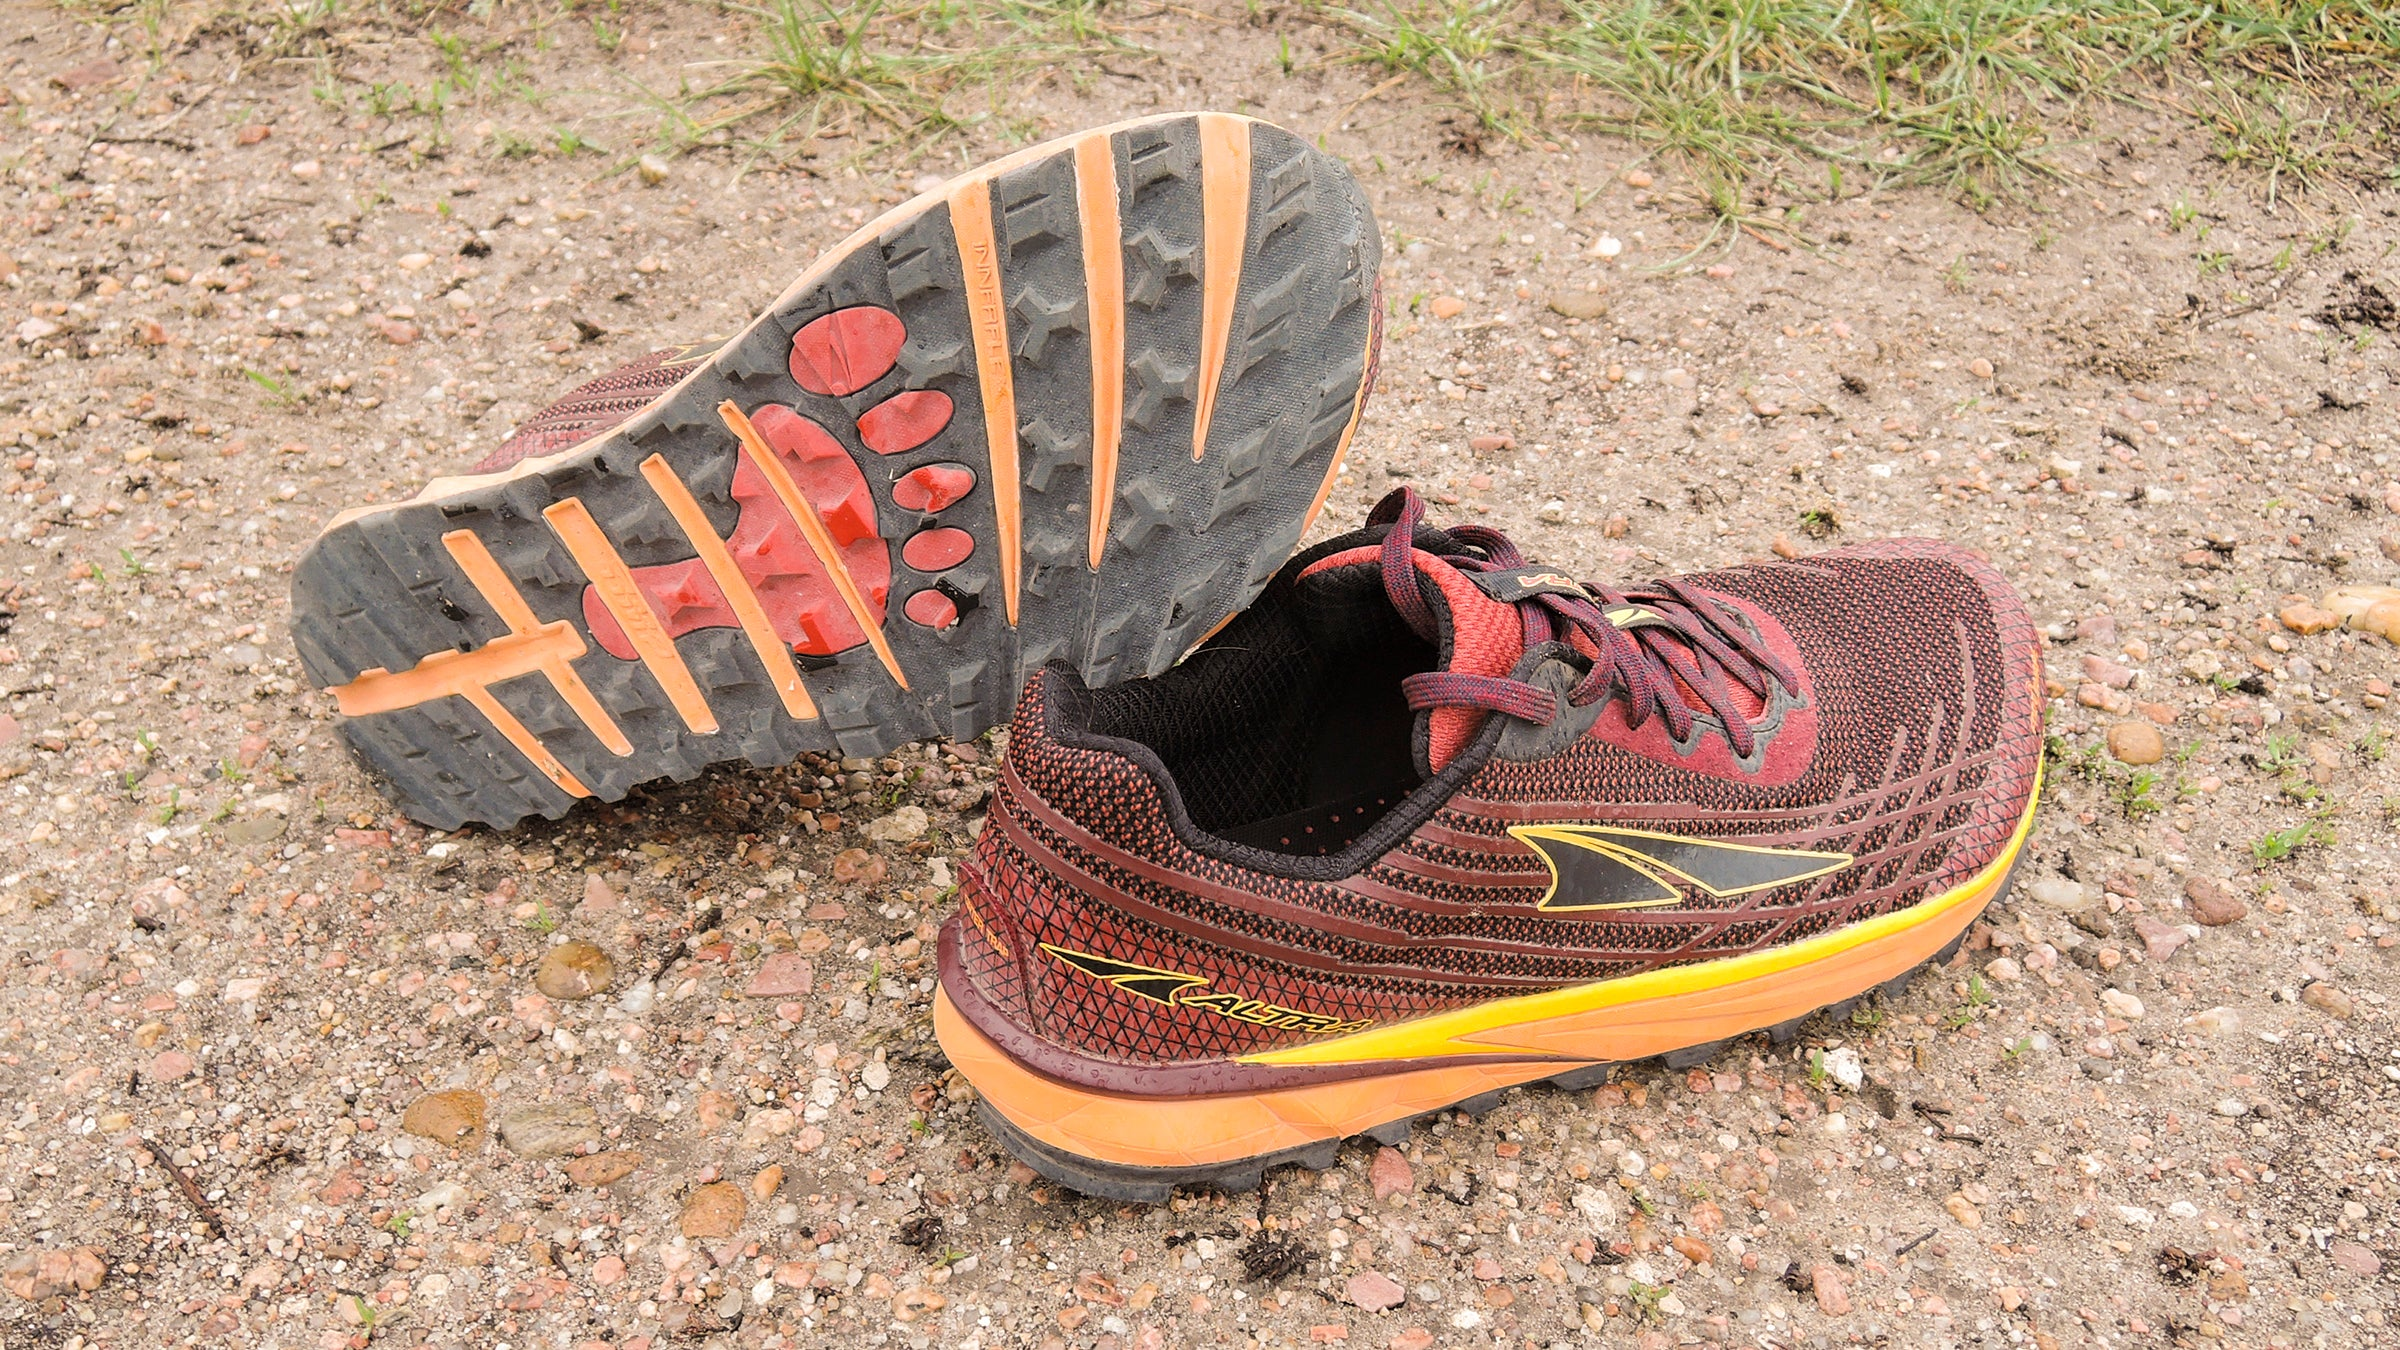 Altra Time 2 trail running shoe